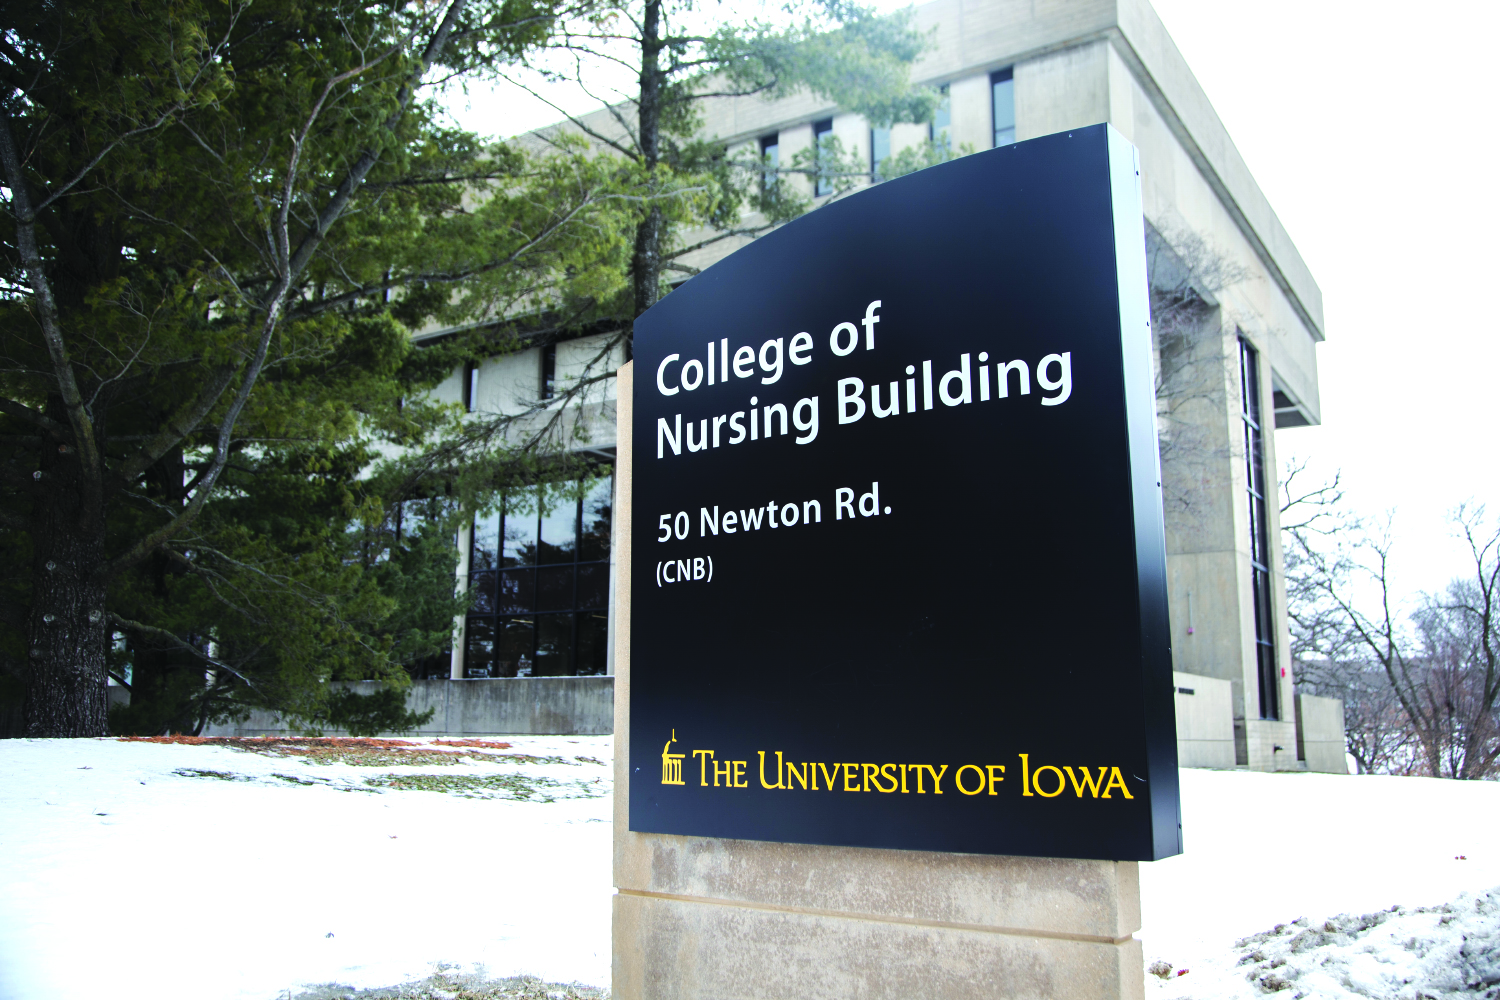 The College of Nursing Building is seen in Iowa City on Monday, February 25, 2019.